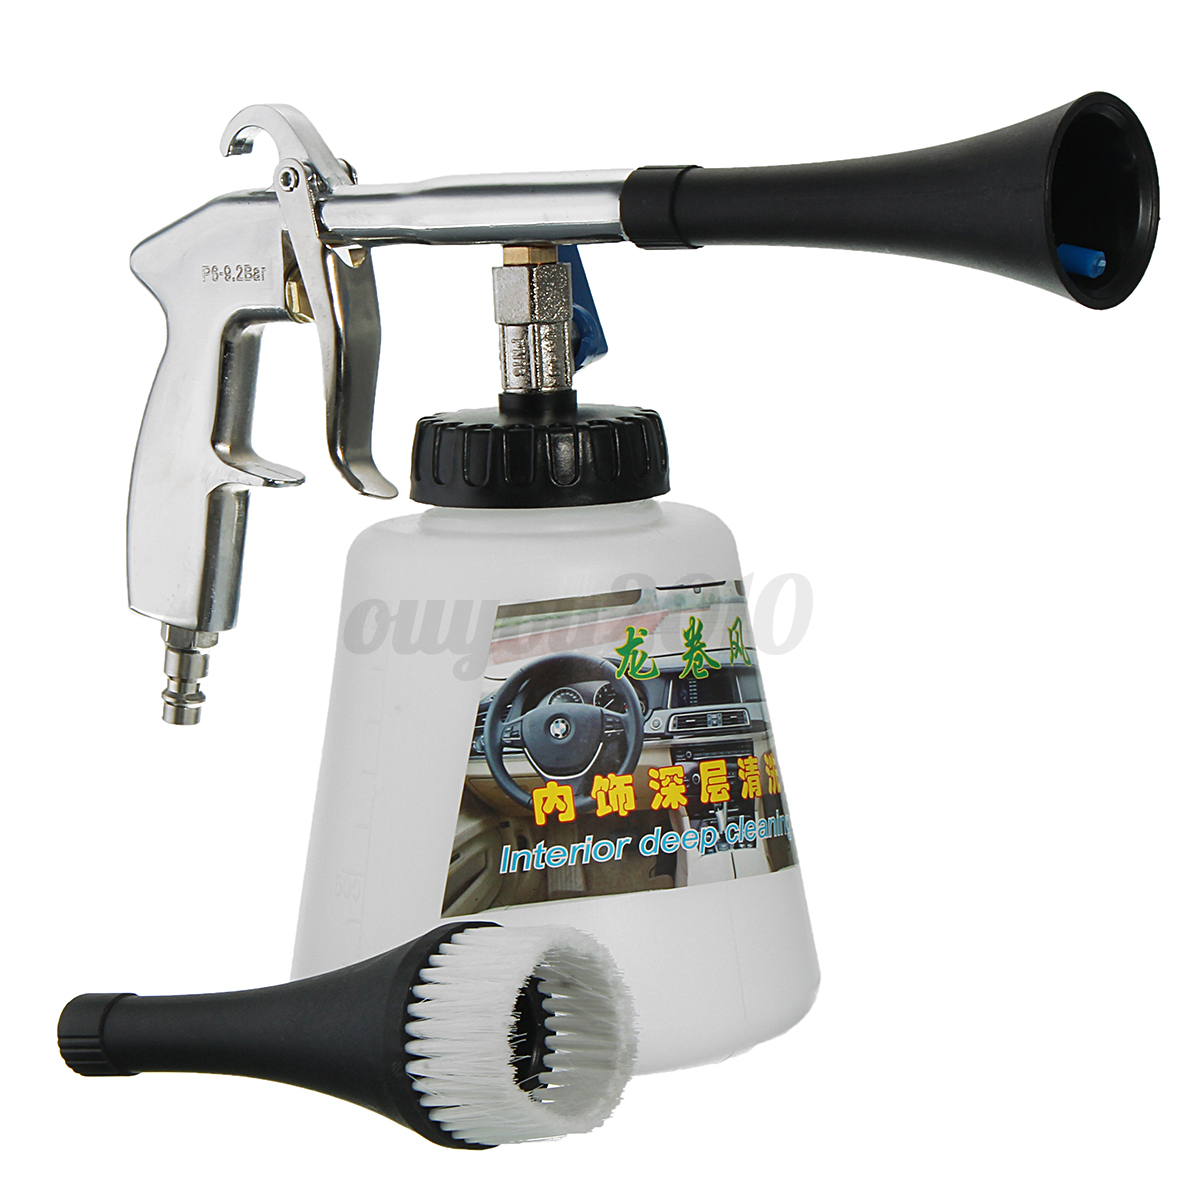 air pulse high pressure car cleaning gun surface interior exterior tornado tool 909982331112 ebay. Black Bedroom Furniture Sets. Home Design Ideas